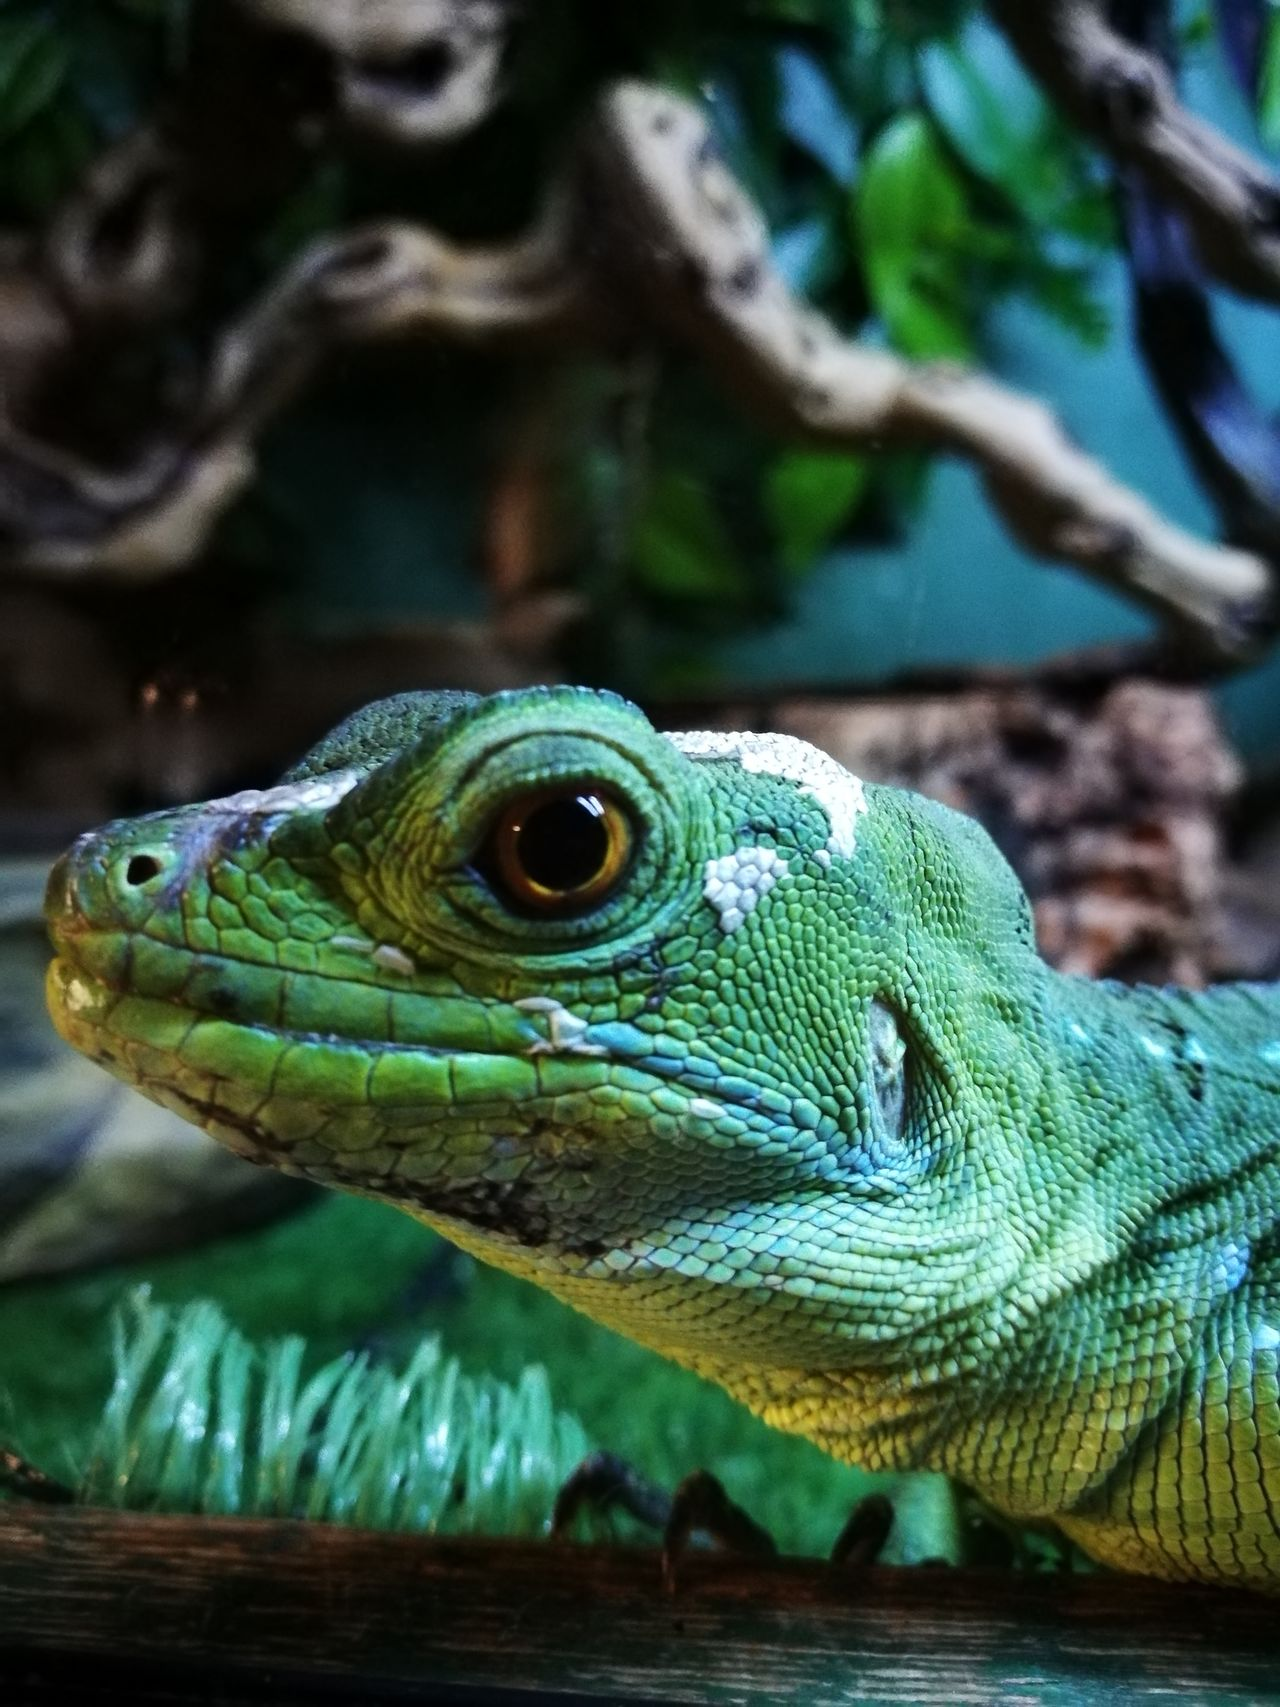 Reptile Animal Wildlife Reptile One Animal Animals In The Wild Outdoors Day No People Close-up Animal Themes Iguana Nature Tree Portrait Beauty In Nature